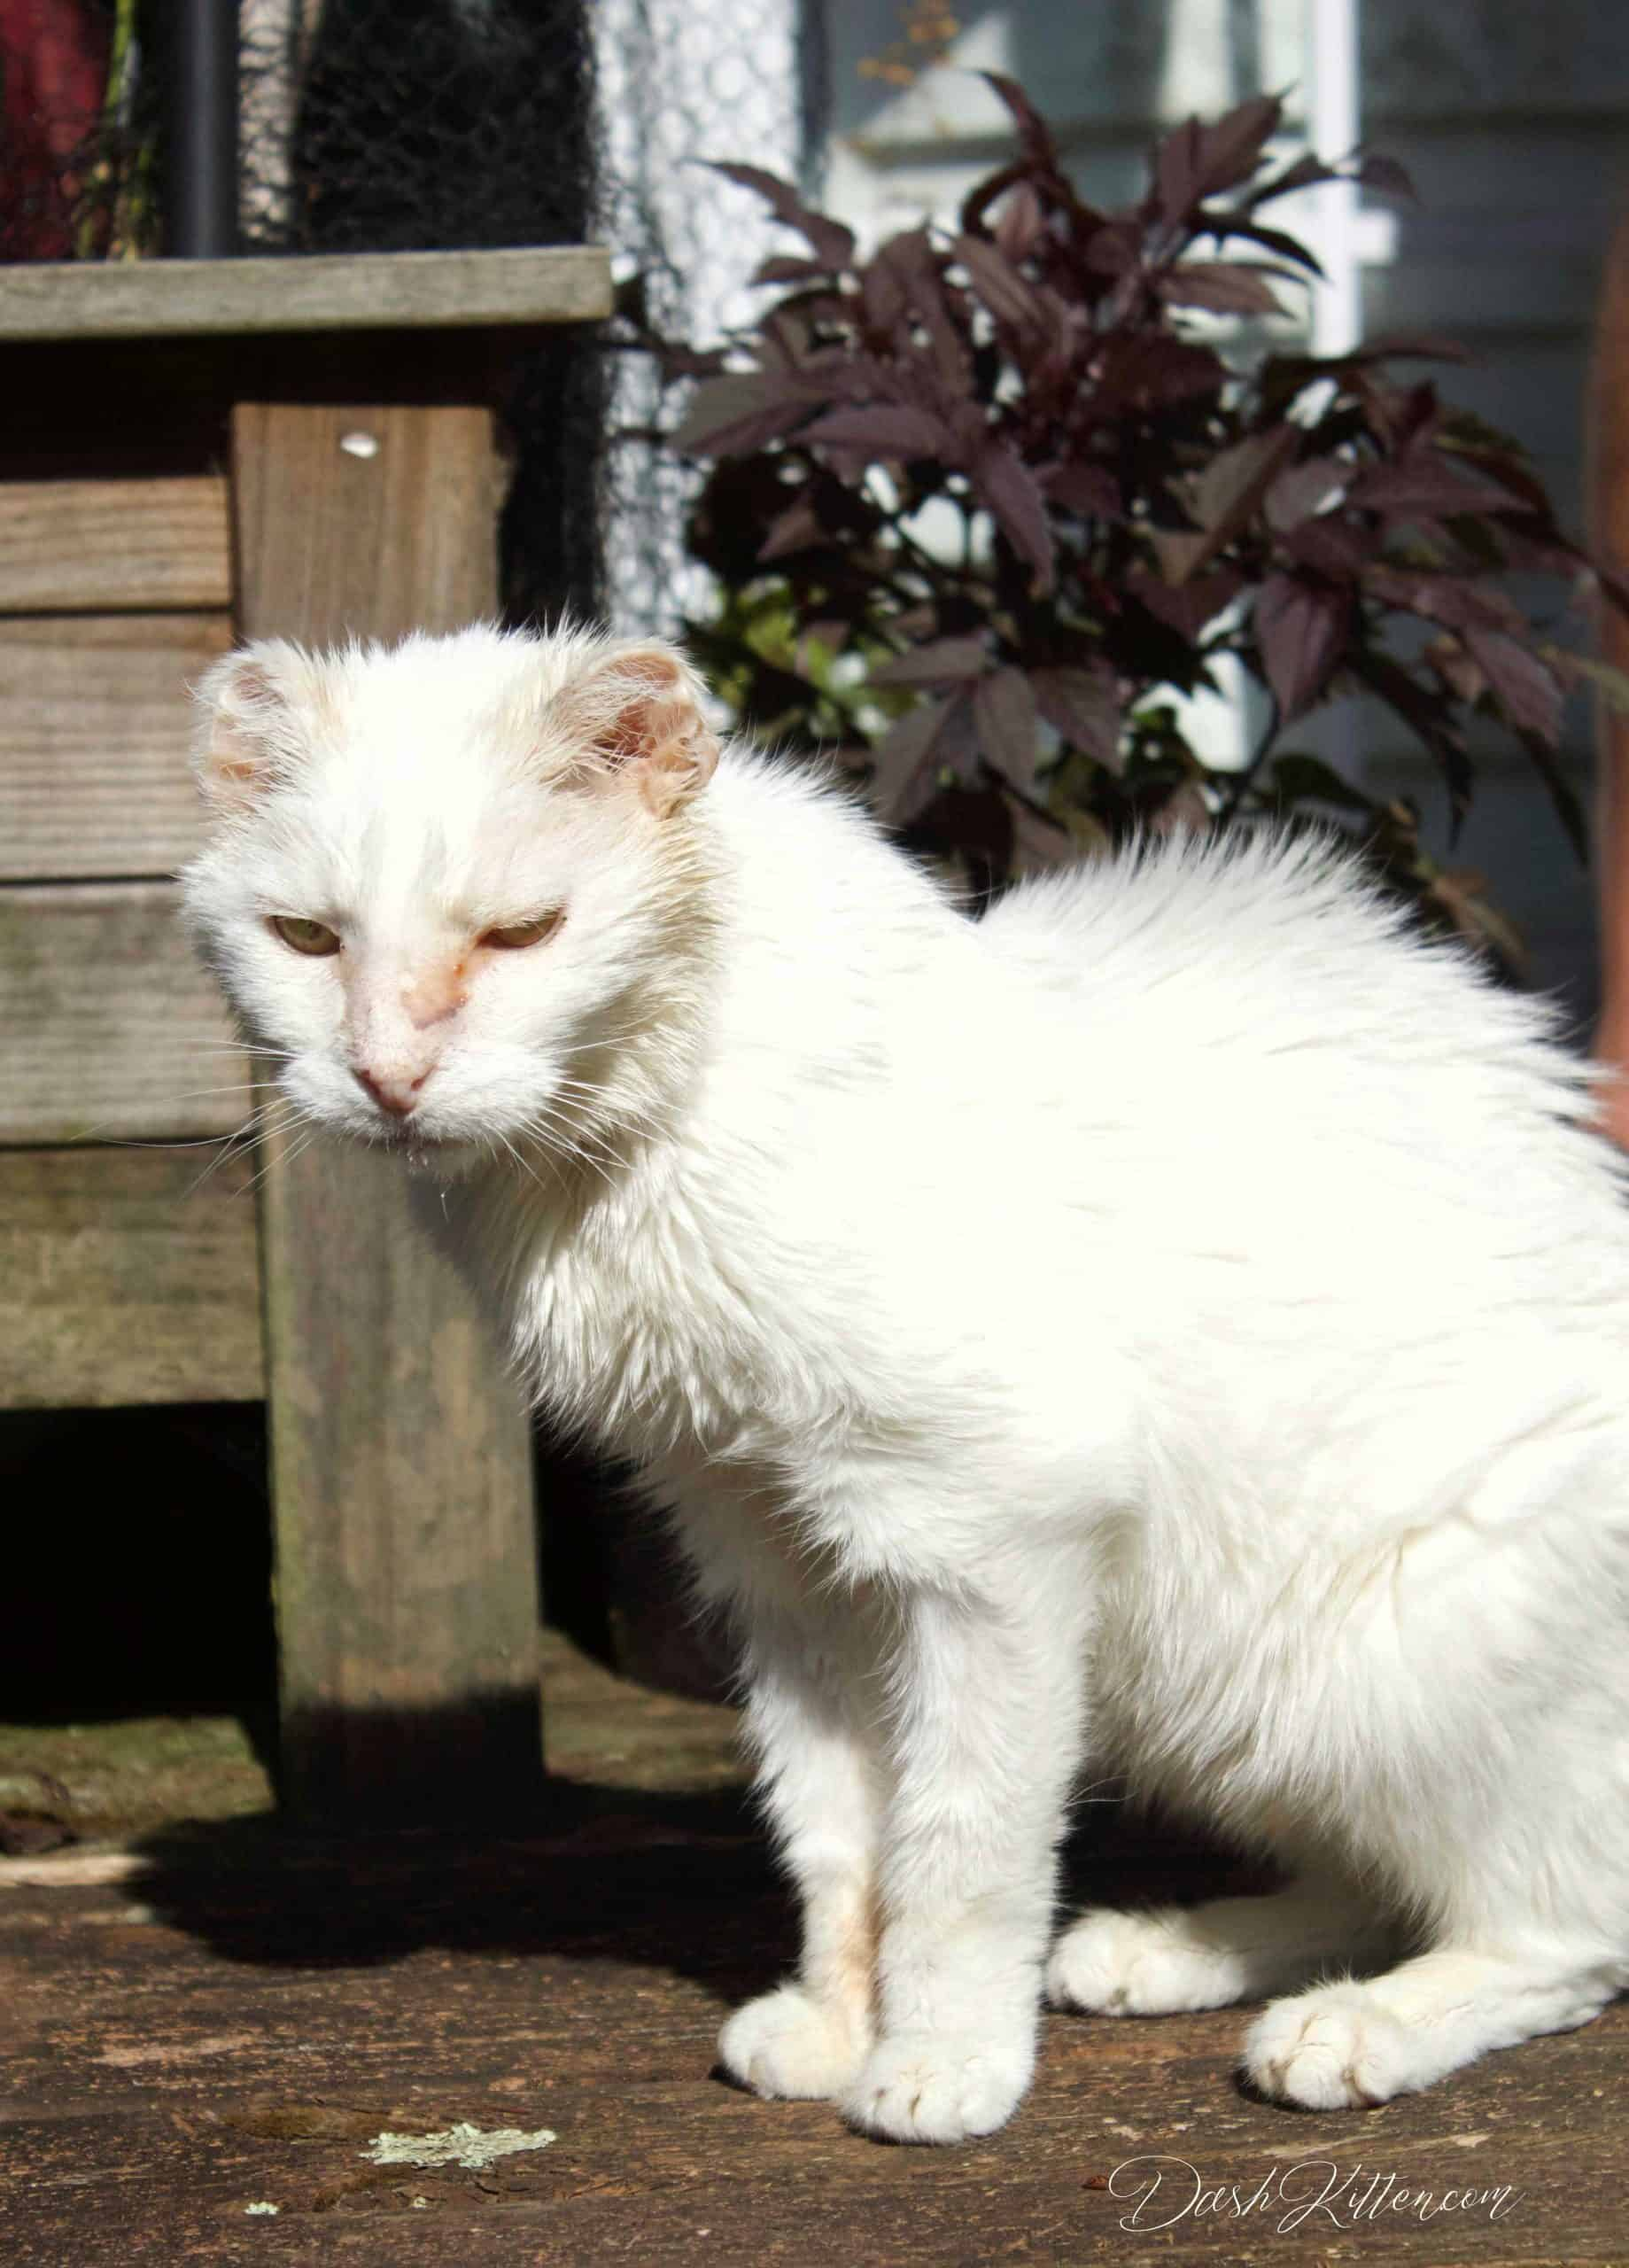 white cat in sunshine. Taken with a 50mm Canon nifty fifty lens.